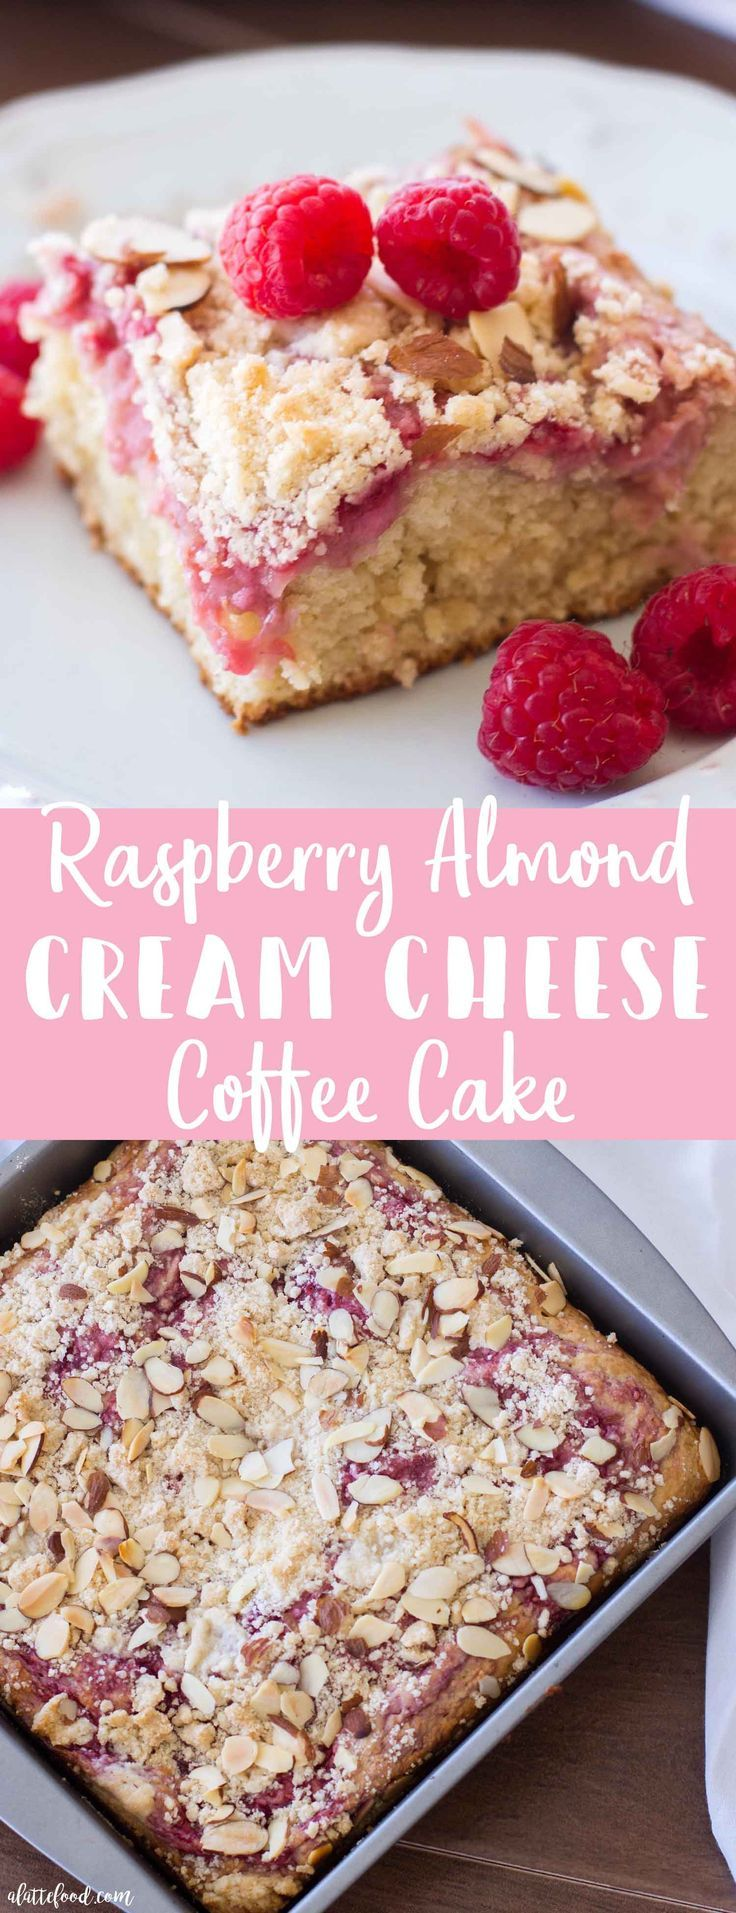 Raspberry Almond Cream Cheese Coffee Cake is the sweetest breakfast treat! This easy raspberry coffee cake recipe is swirled with raspberries and cream cheese, has a sweet crumb topping, and is sprinkled with sliced almonds! A classic coffee cake recipe jazzed up with a raspberry cheesecake filling!